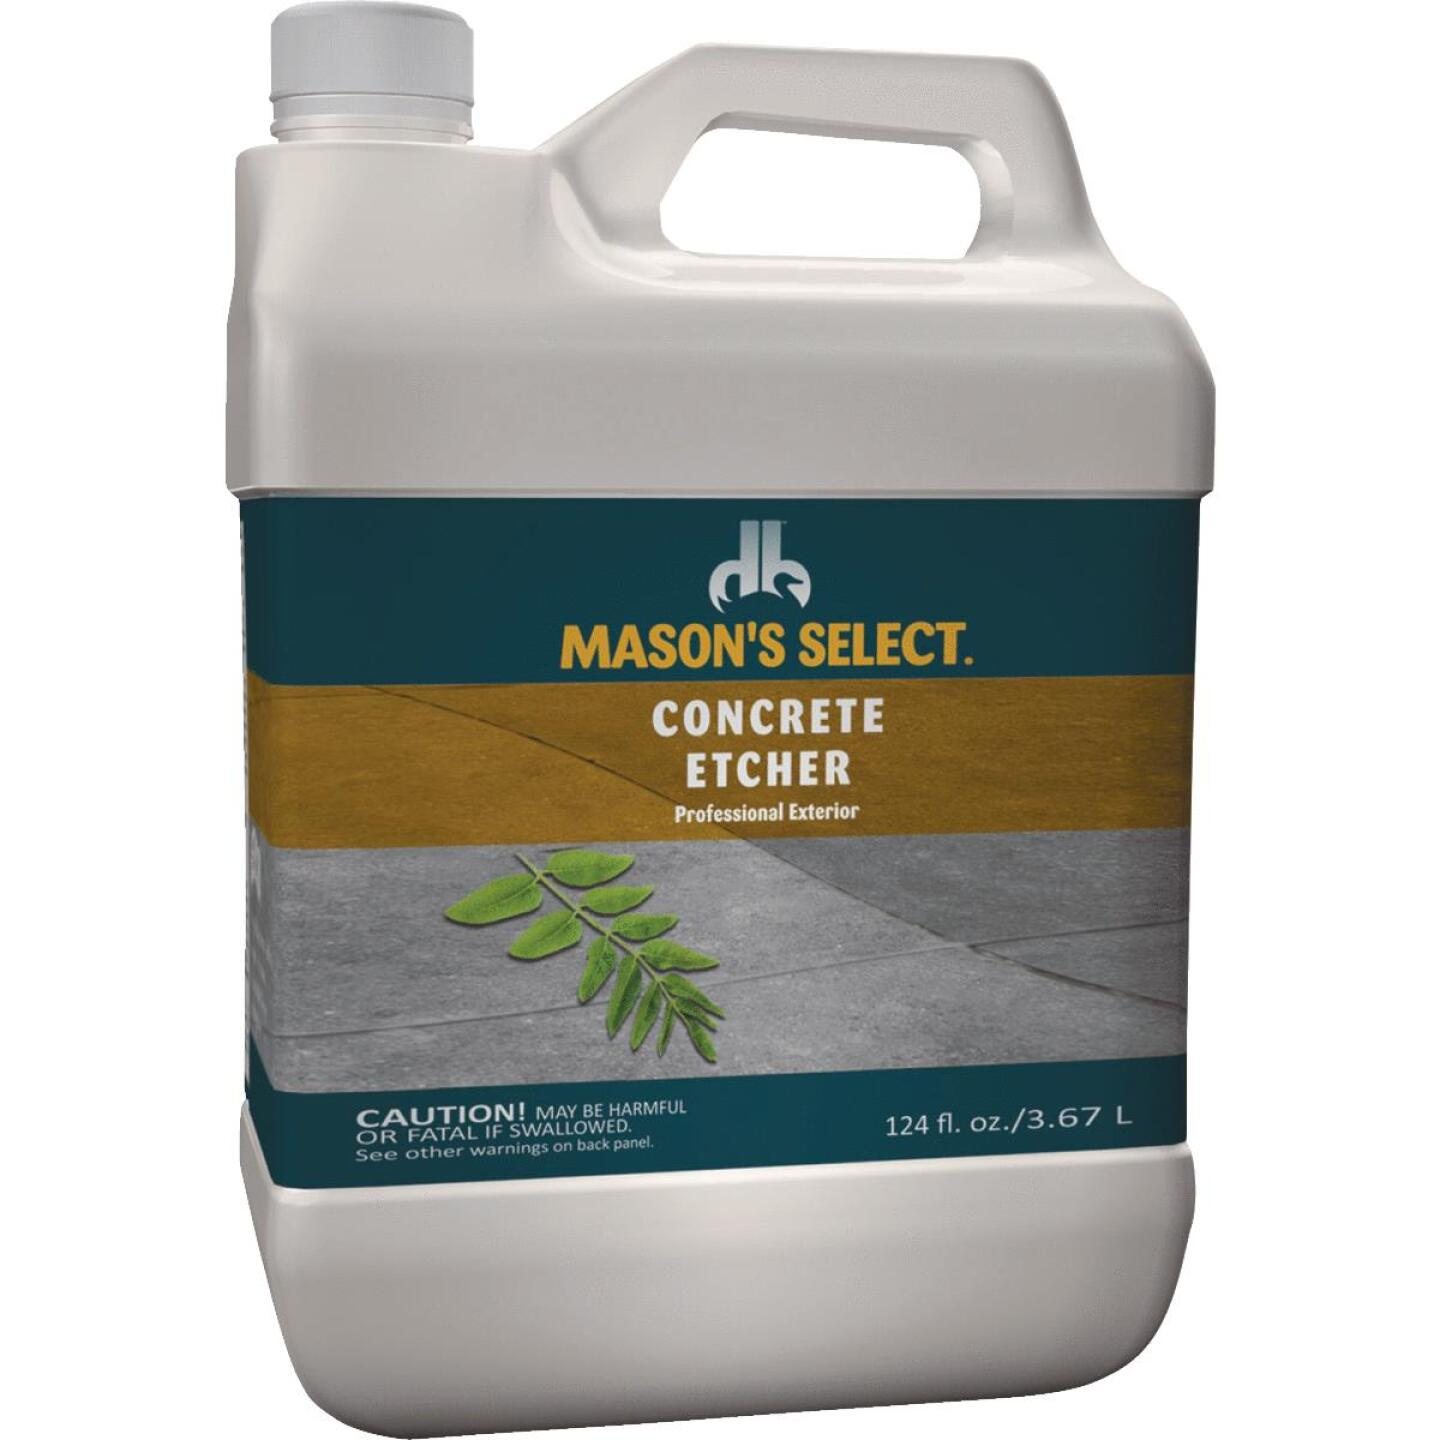 Duckback MASON'S SELECT Ready-to-Use Concrete Cleaner and Etcher Image 1